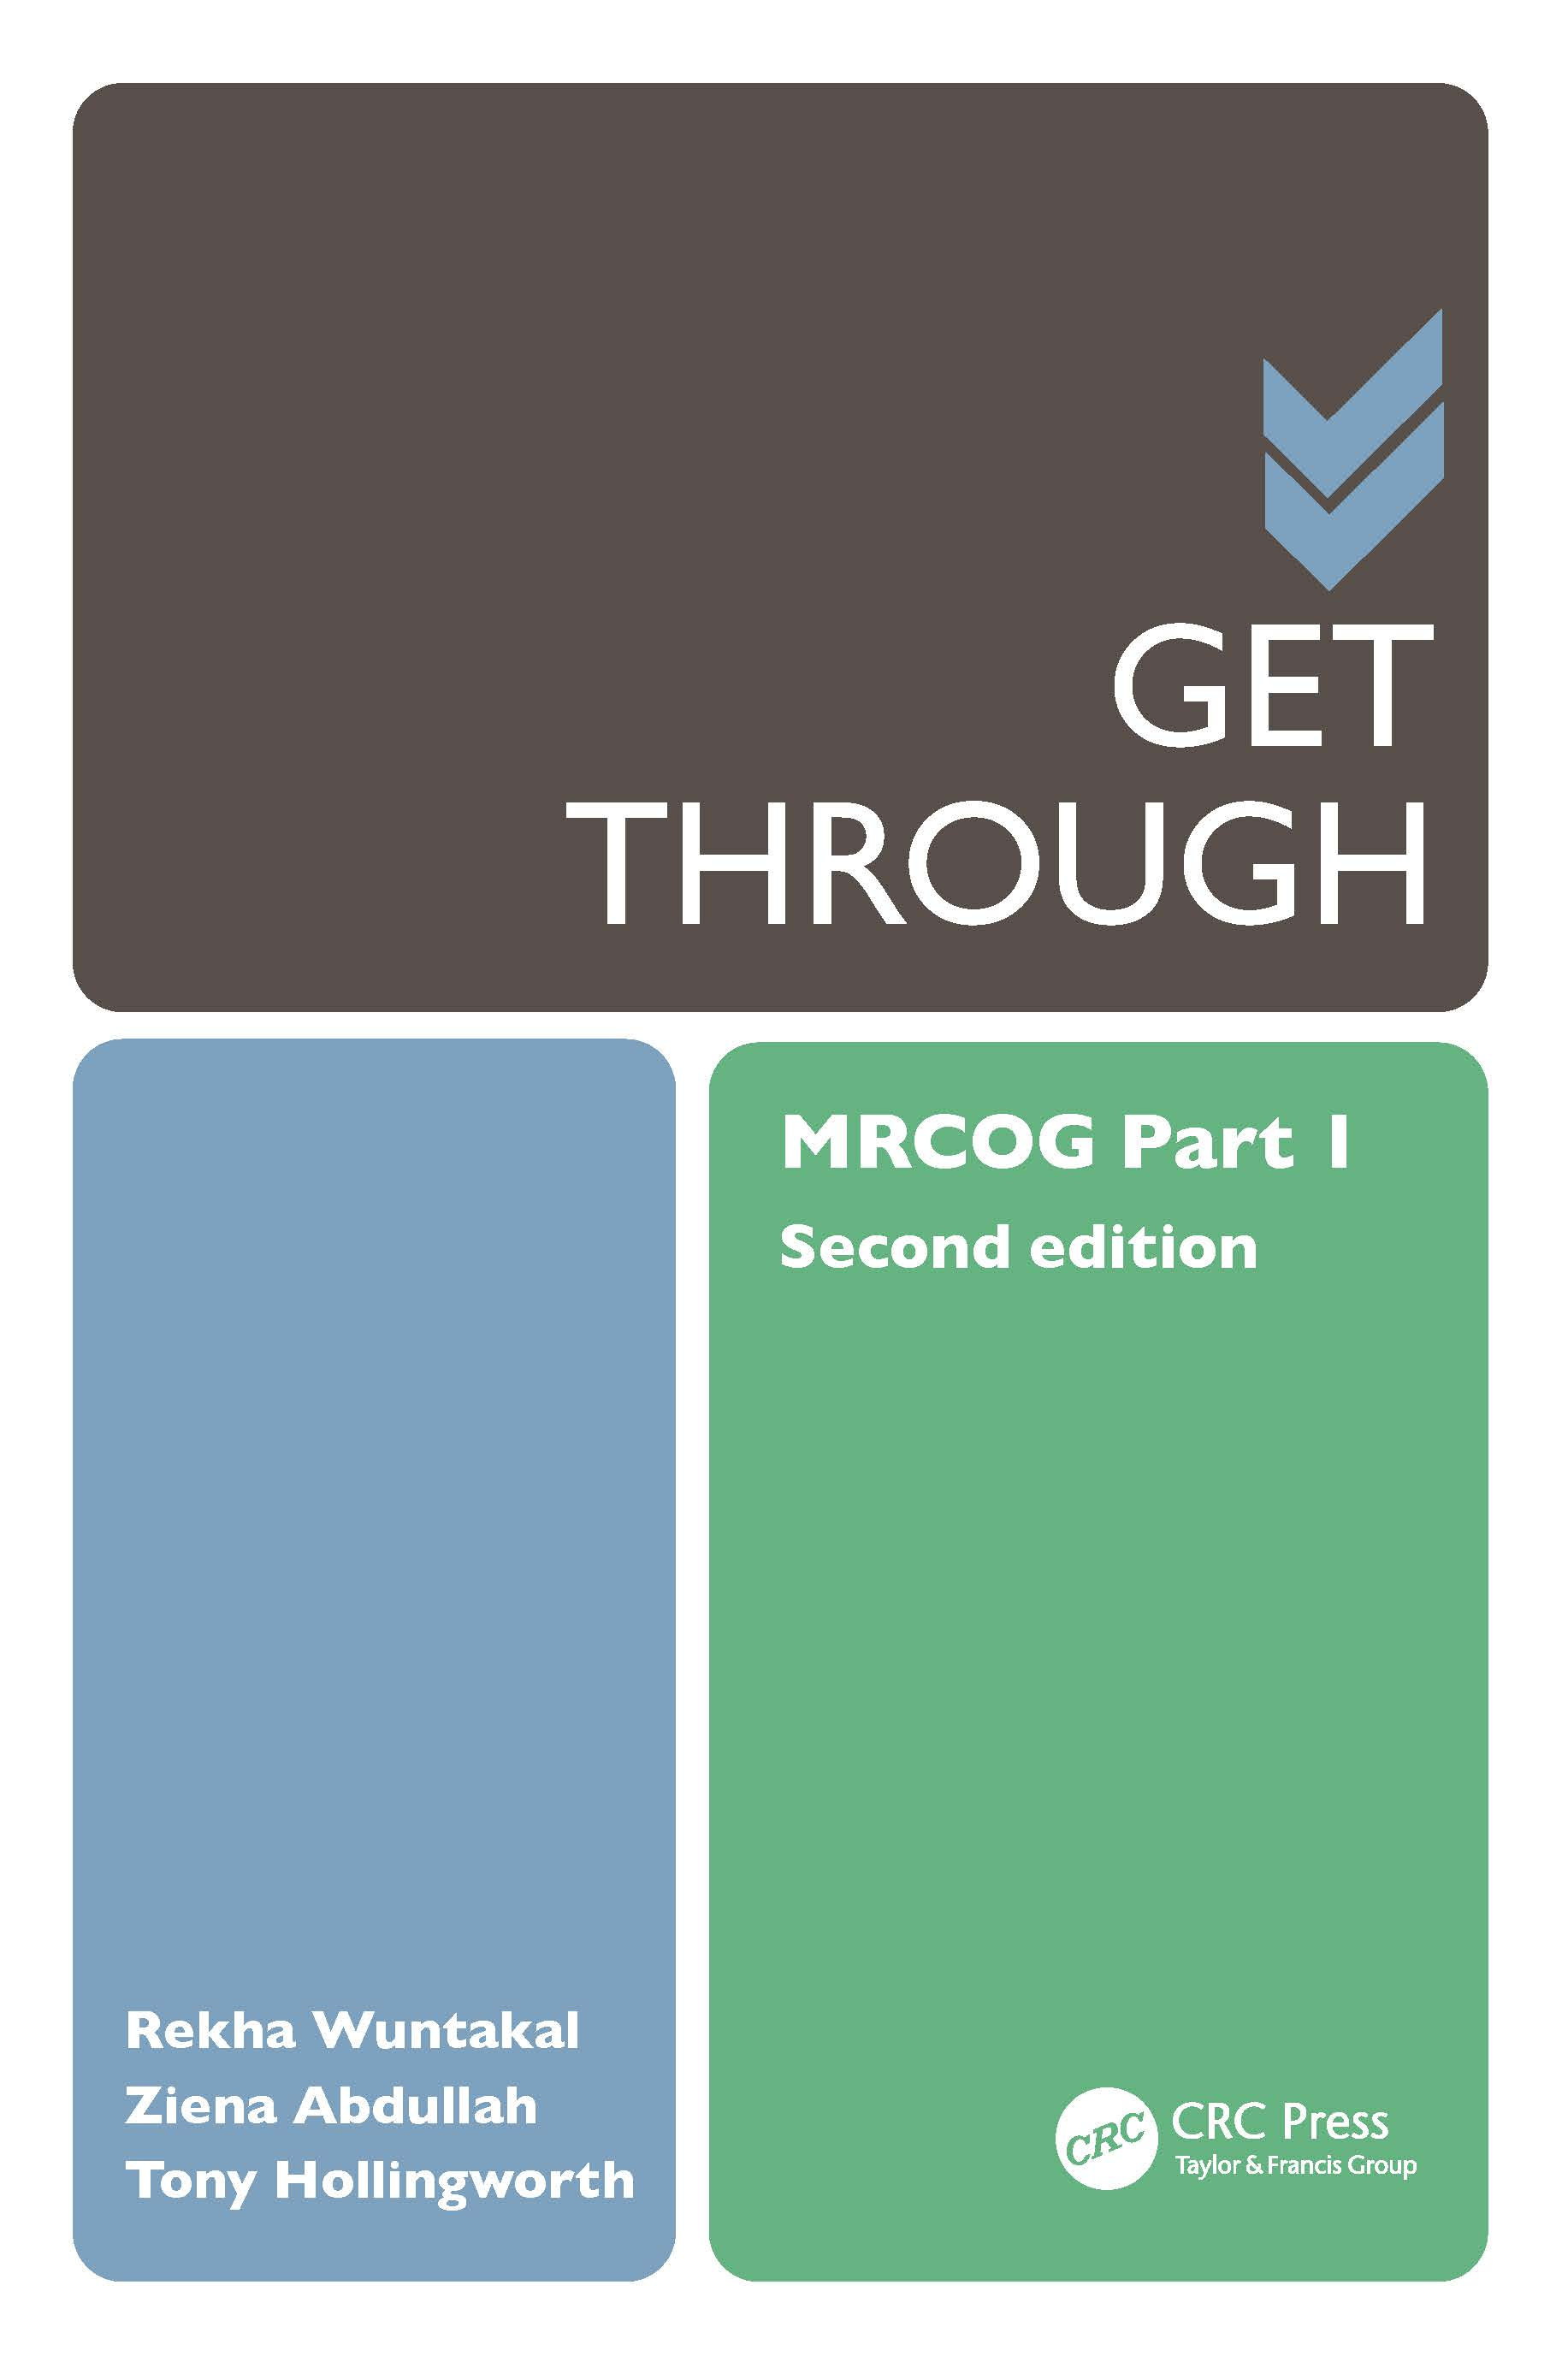 Get Through MRCOG Part 1 book cover